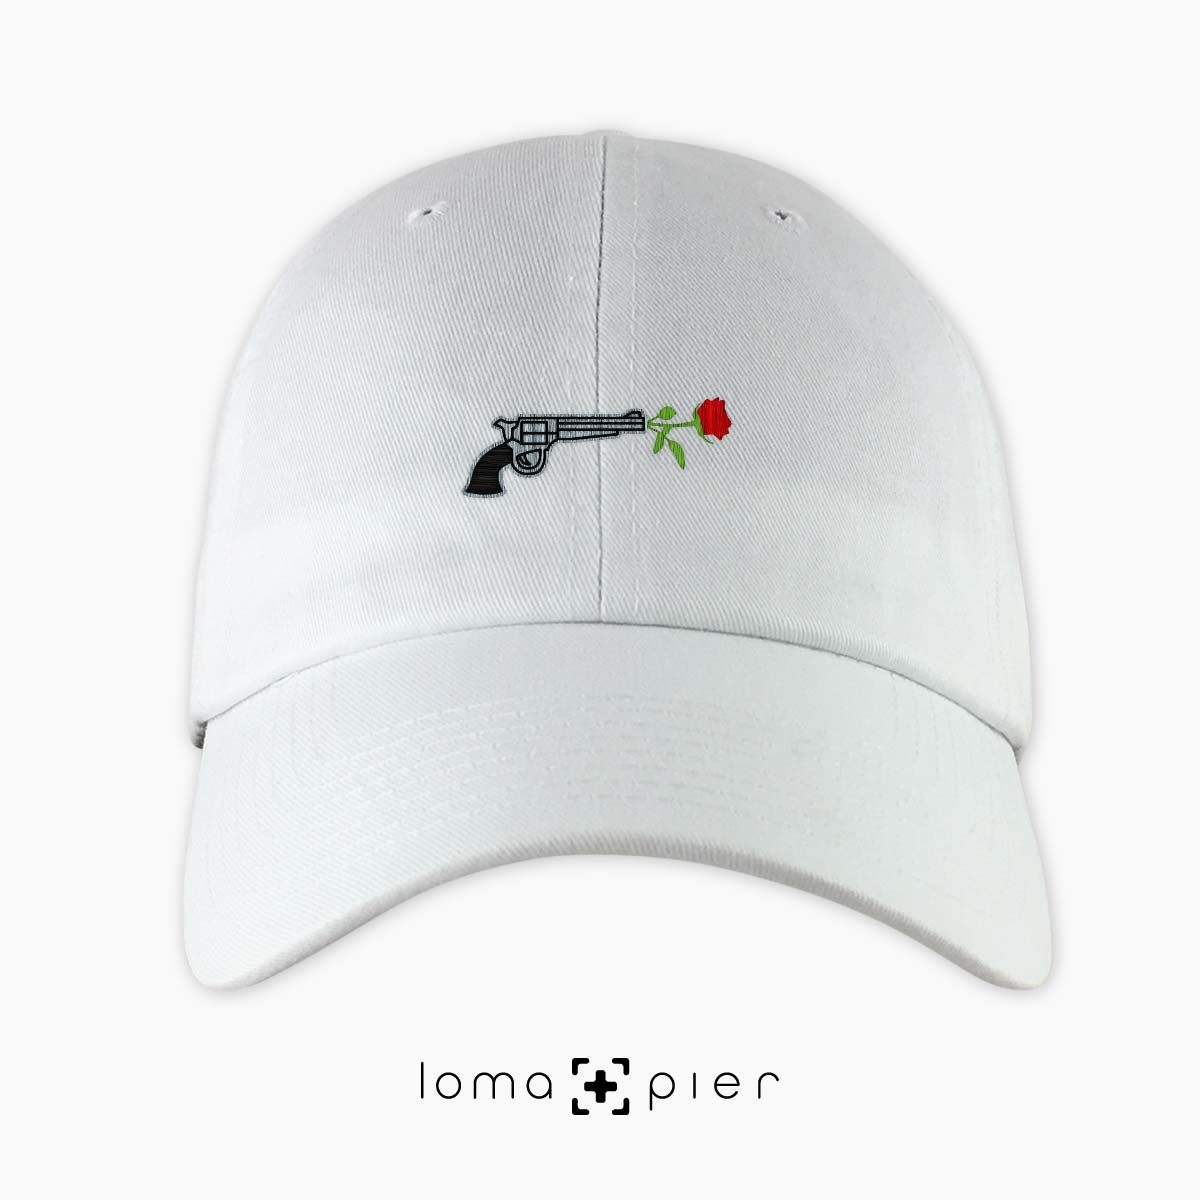 ROSE REVOLVER icon embroidered on a white unstructured dad hat with multicolor thread by loma+pier hat store made in the USA